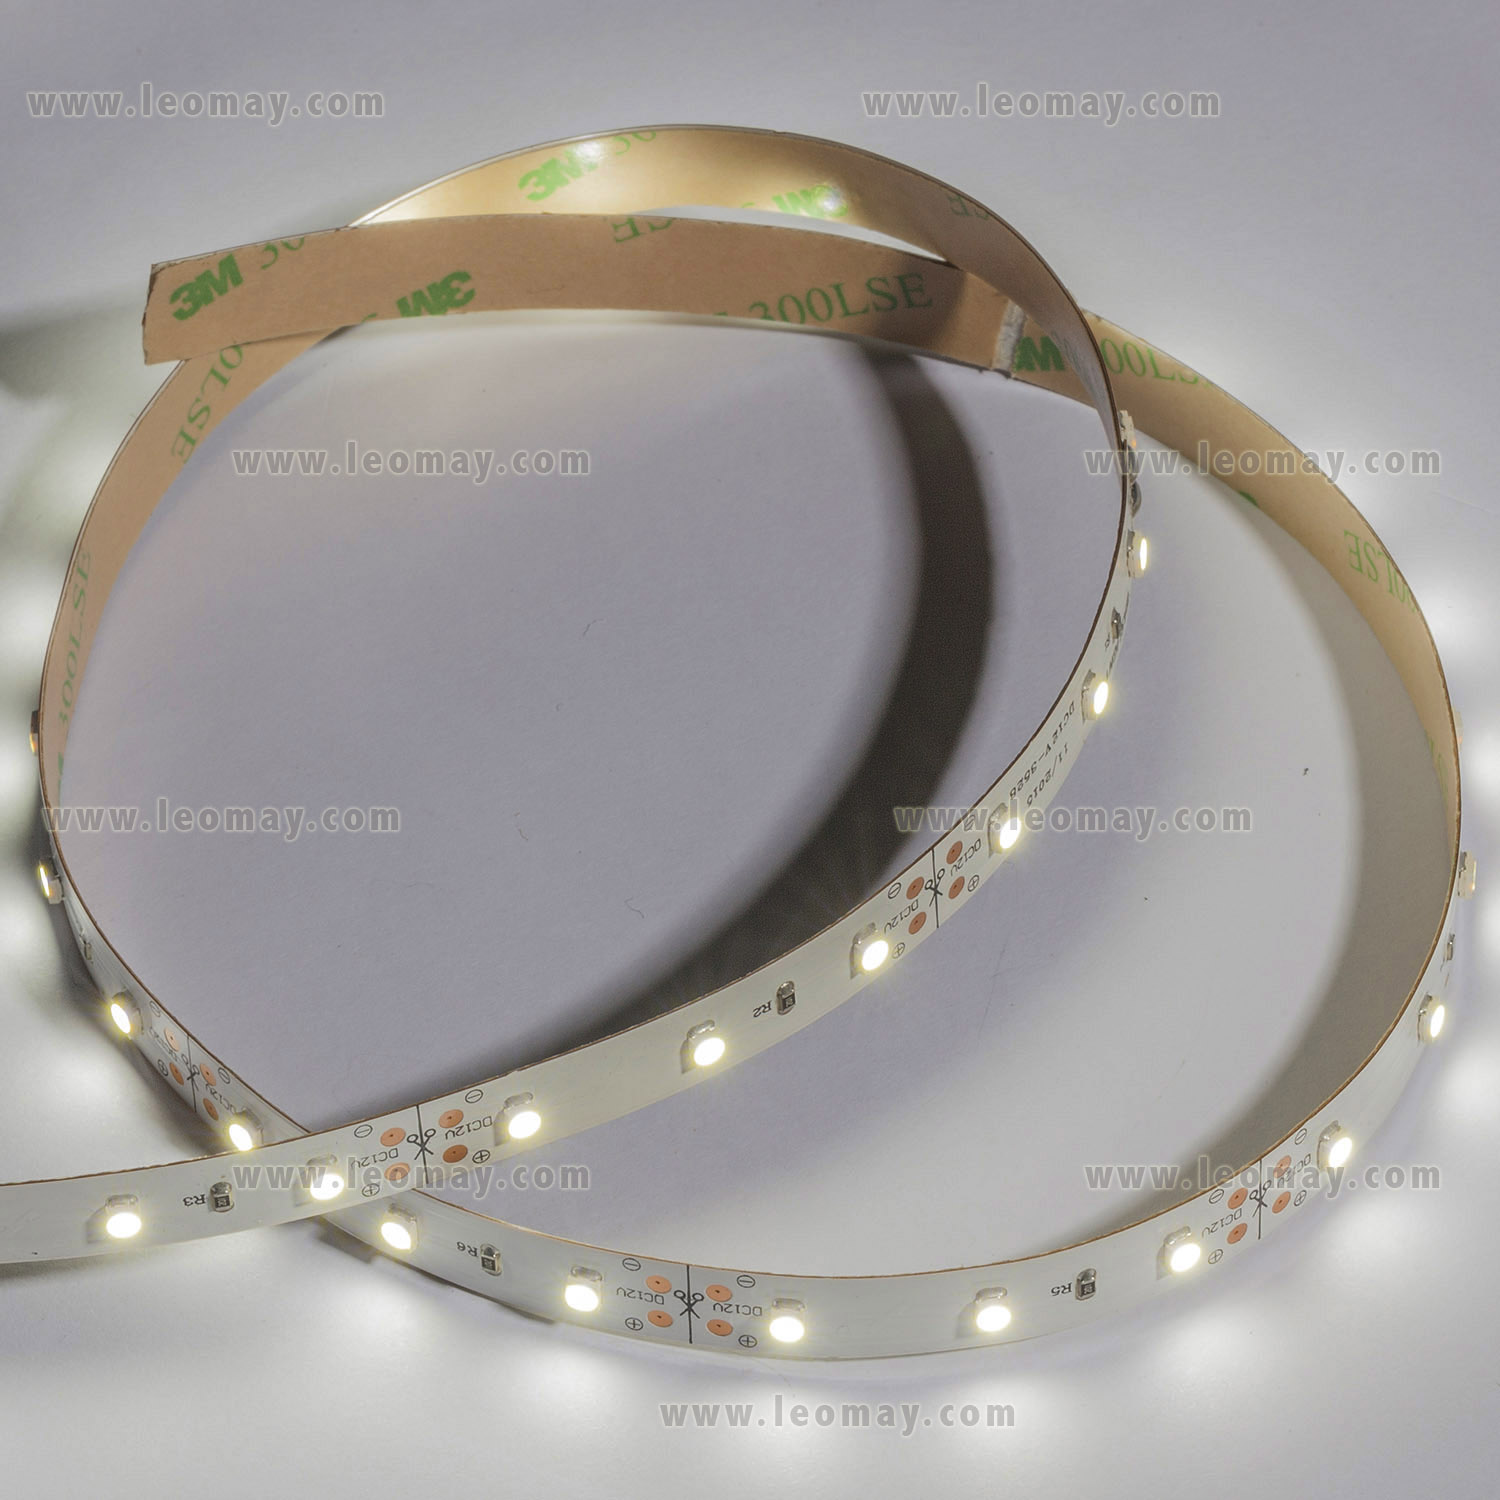 SMD3528 30leds/m DC12V LED strips(Non-waterproof)